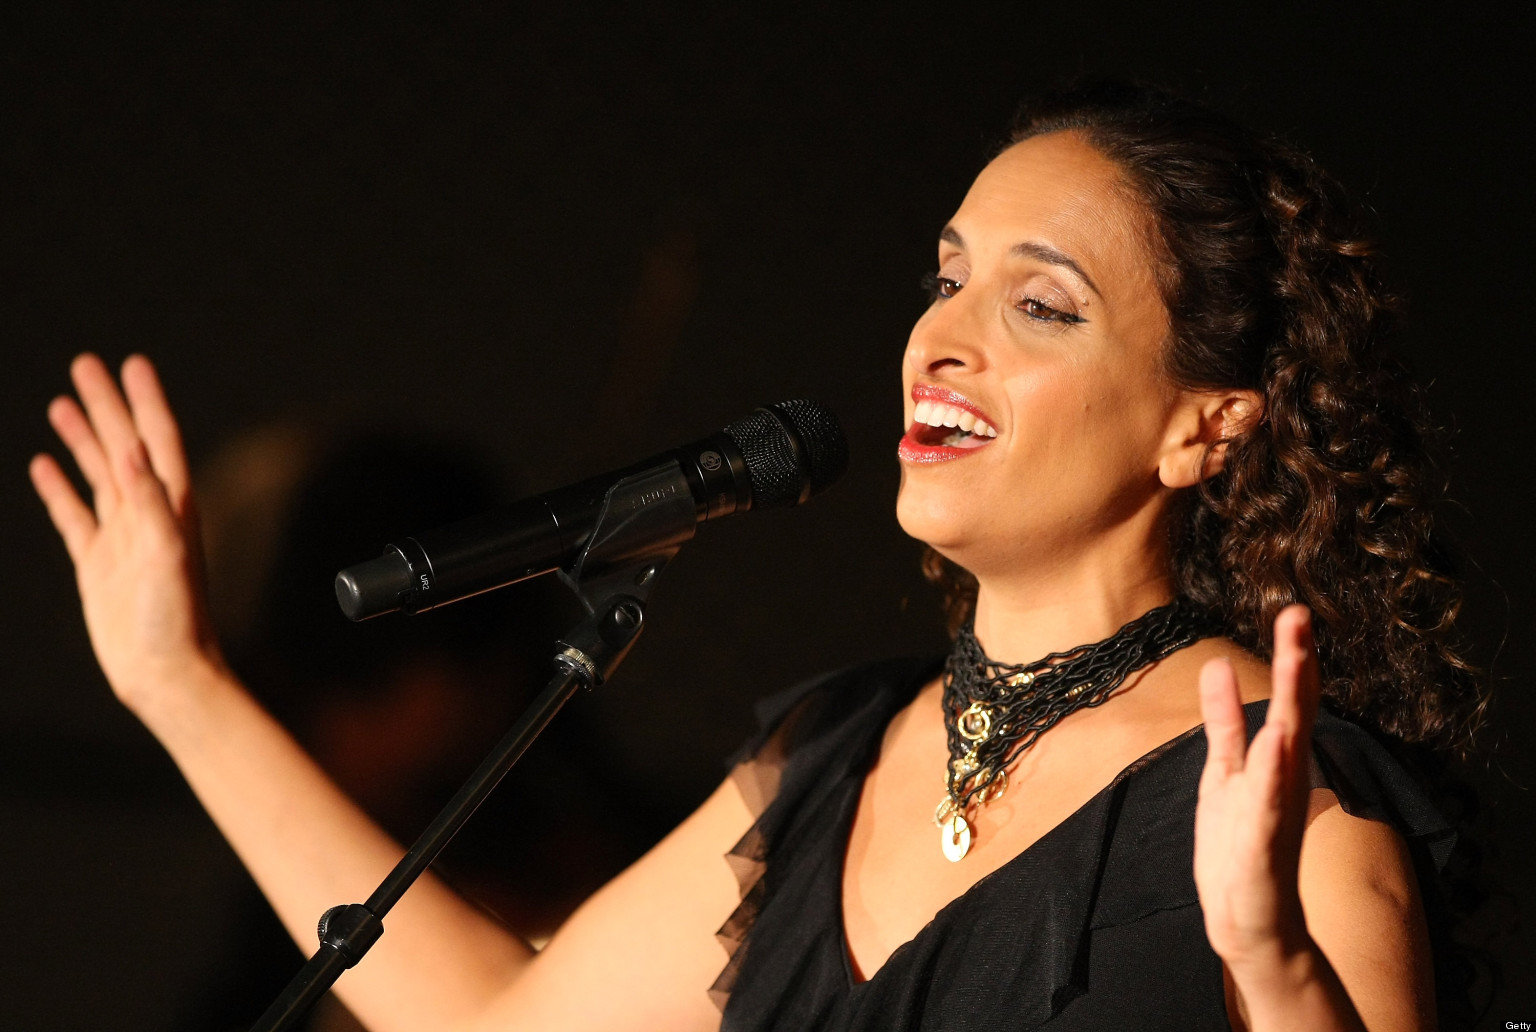 BERLIN, GERMANY - NOVEMBER 26:  Israeli Singer Achinoam Nini, also known as Noa, performs with the Solis String Quartet at the Universitaet der Kuenste Berlin (UdK) on November 26, 2012 in Berlin, Germany.  (Photo by Adam Berry/Redferns via Getty Images)